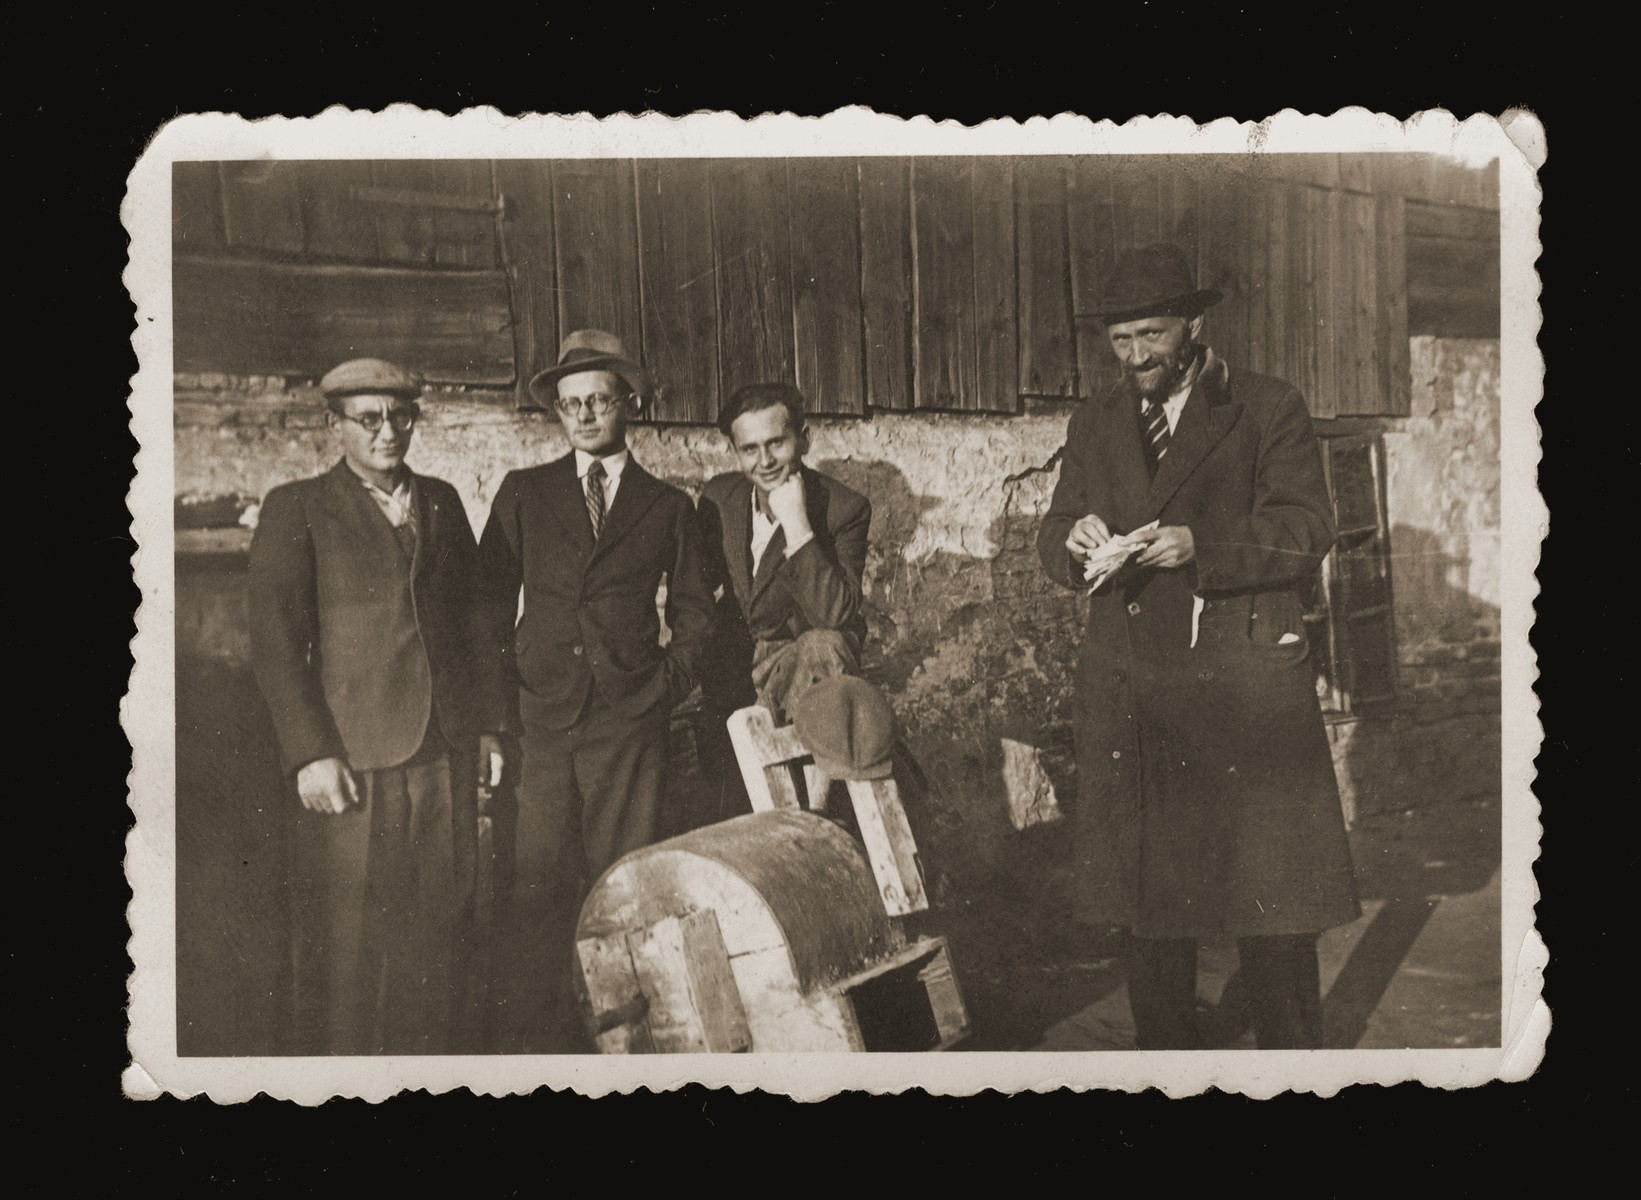 Members of the Feder family pose outside in Dabrowa Gornicza.  Pictured from left to right are Szrage, Mosze, Yehiel and their father, Abraham Yitzhak Feder.